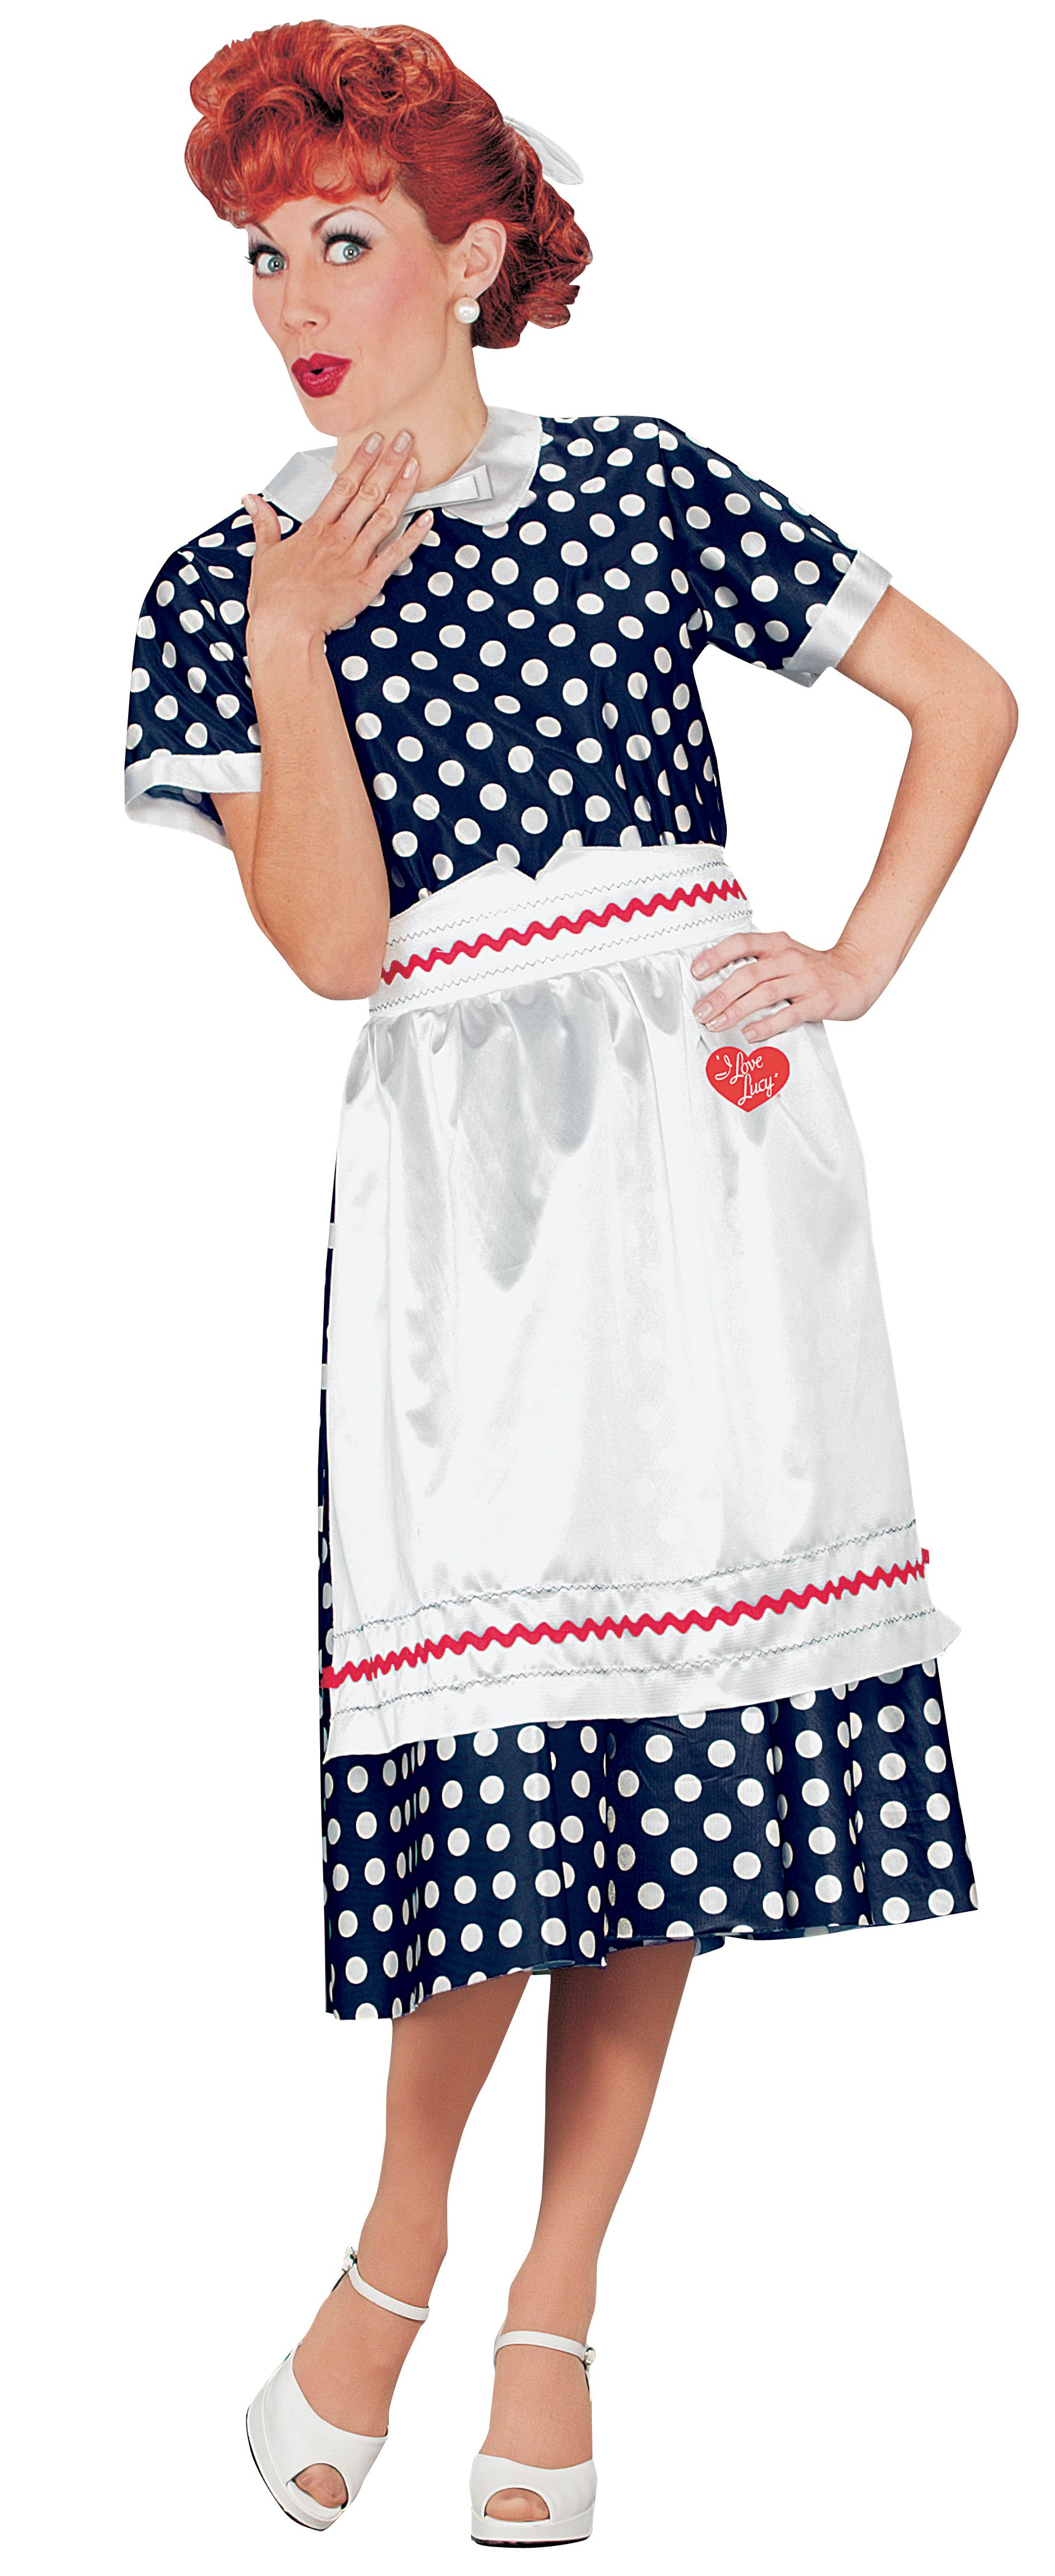 I Love Lucy 1950s Costume Dress  sc 1 st  Pinterest & I Love Lucy 1950s Costume Dress | Retro costume Costume dress and ...